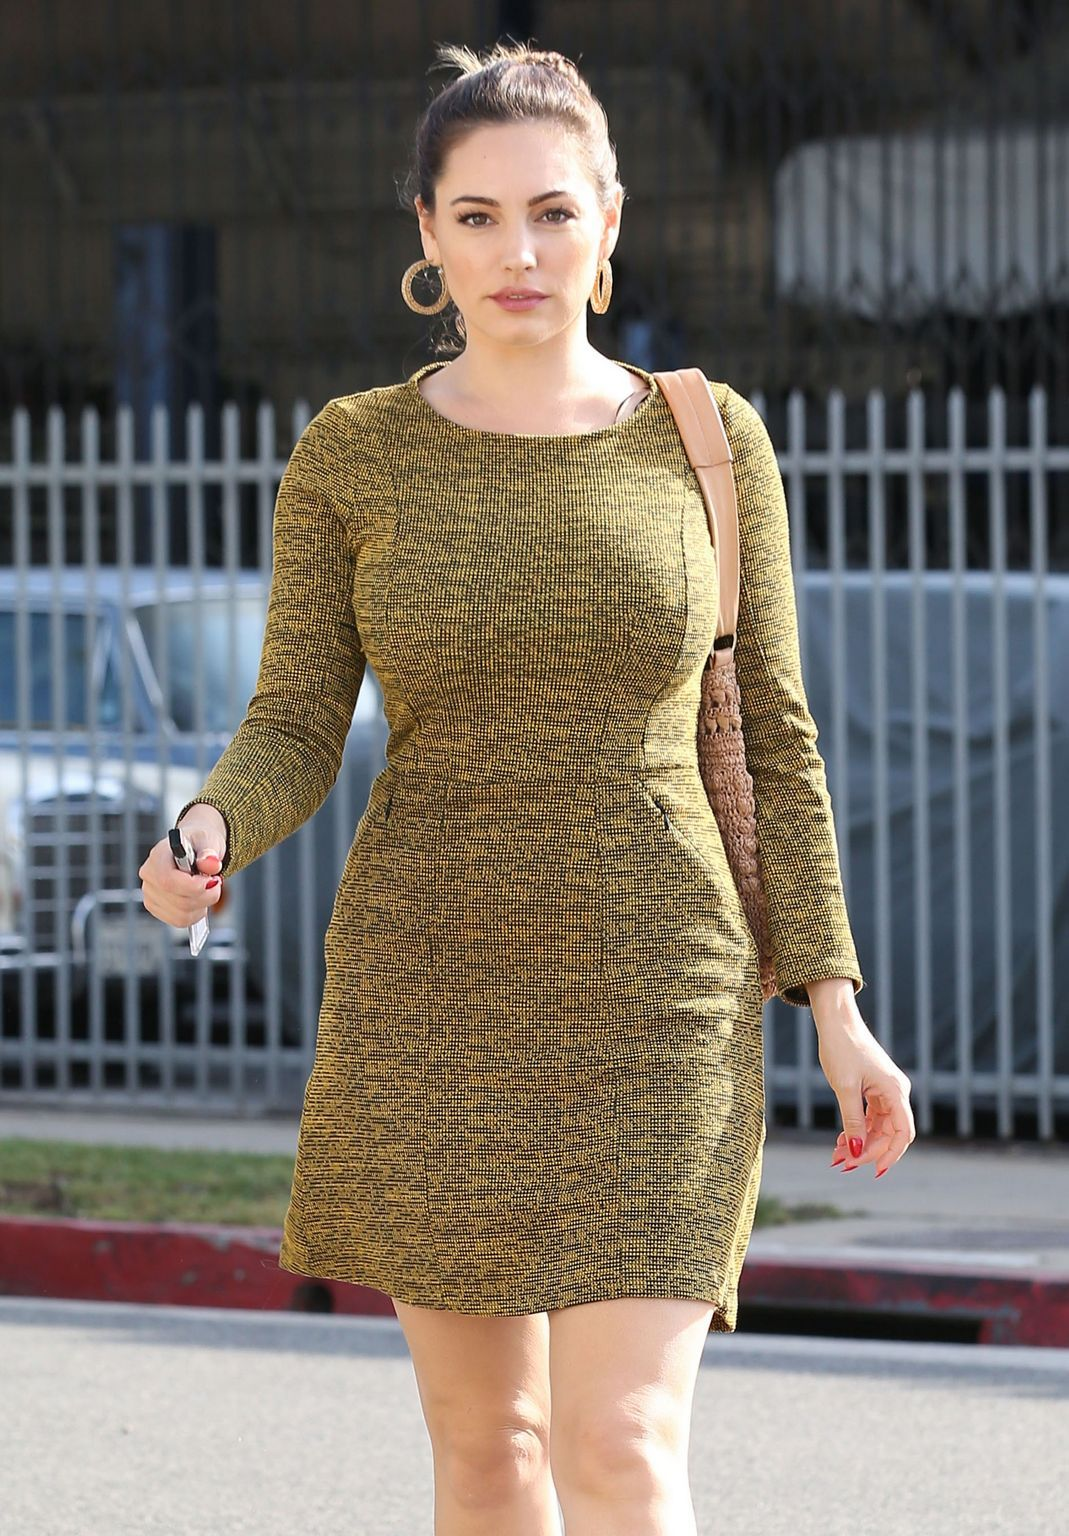 Kelly Brook Out and About àin Santa Monica, California